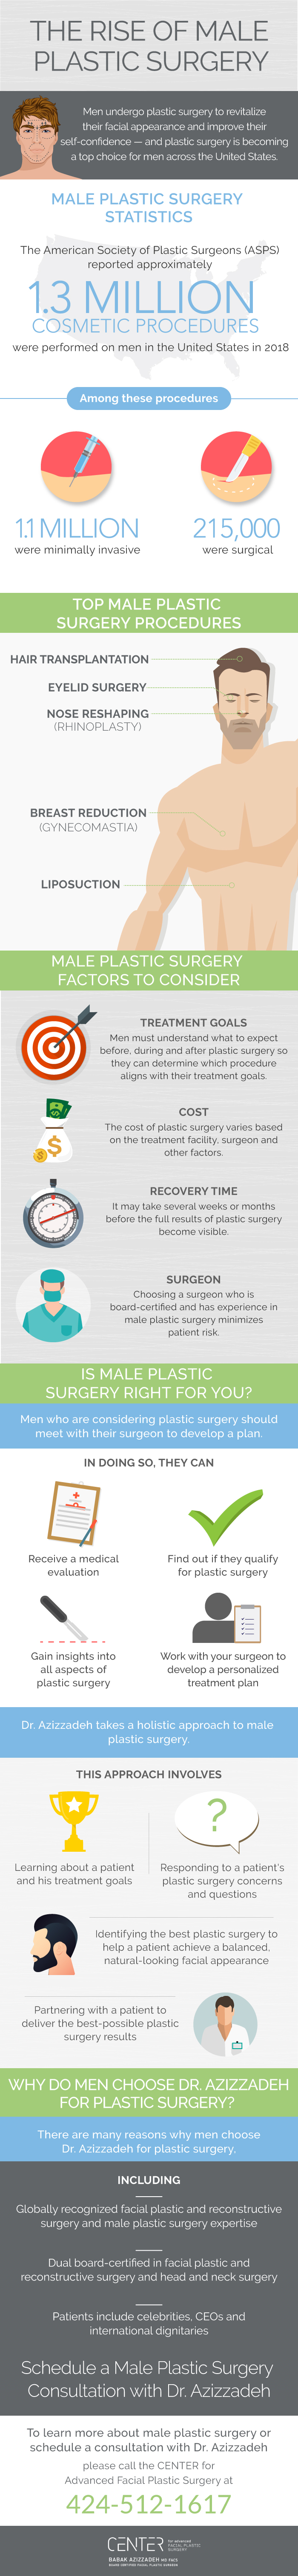 Male Plastic Surgery Infographic